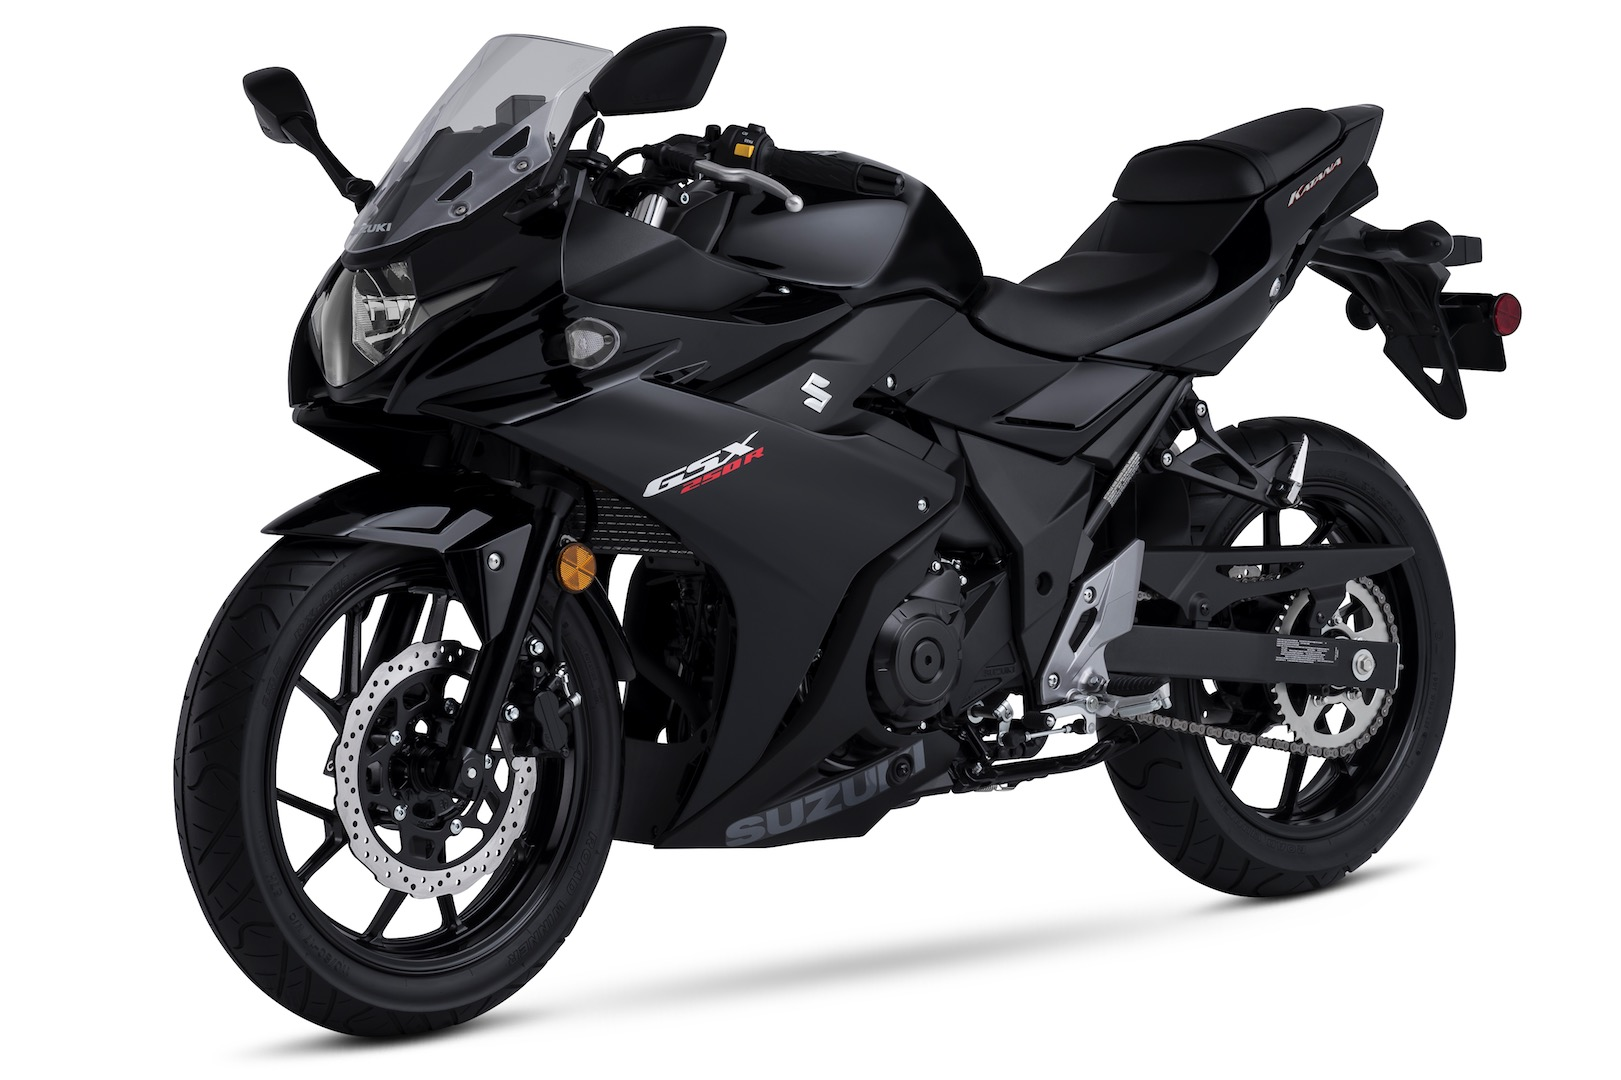 2018 suzuki gsx250r katana price and colors announced. Black Bedroom Furniture Sets. Home Design Ideas